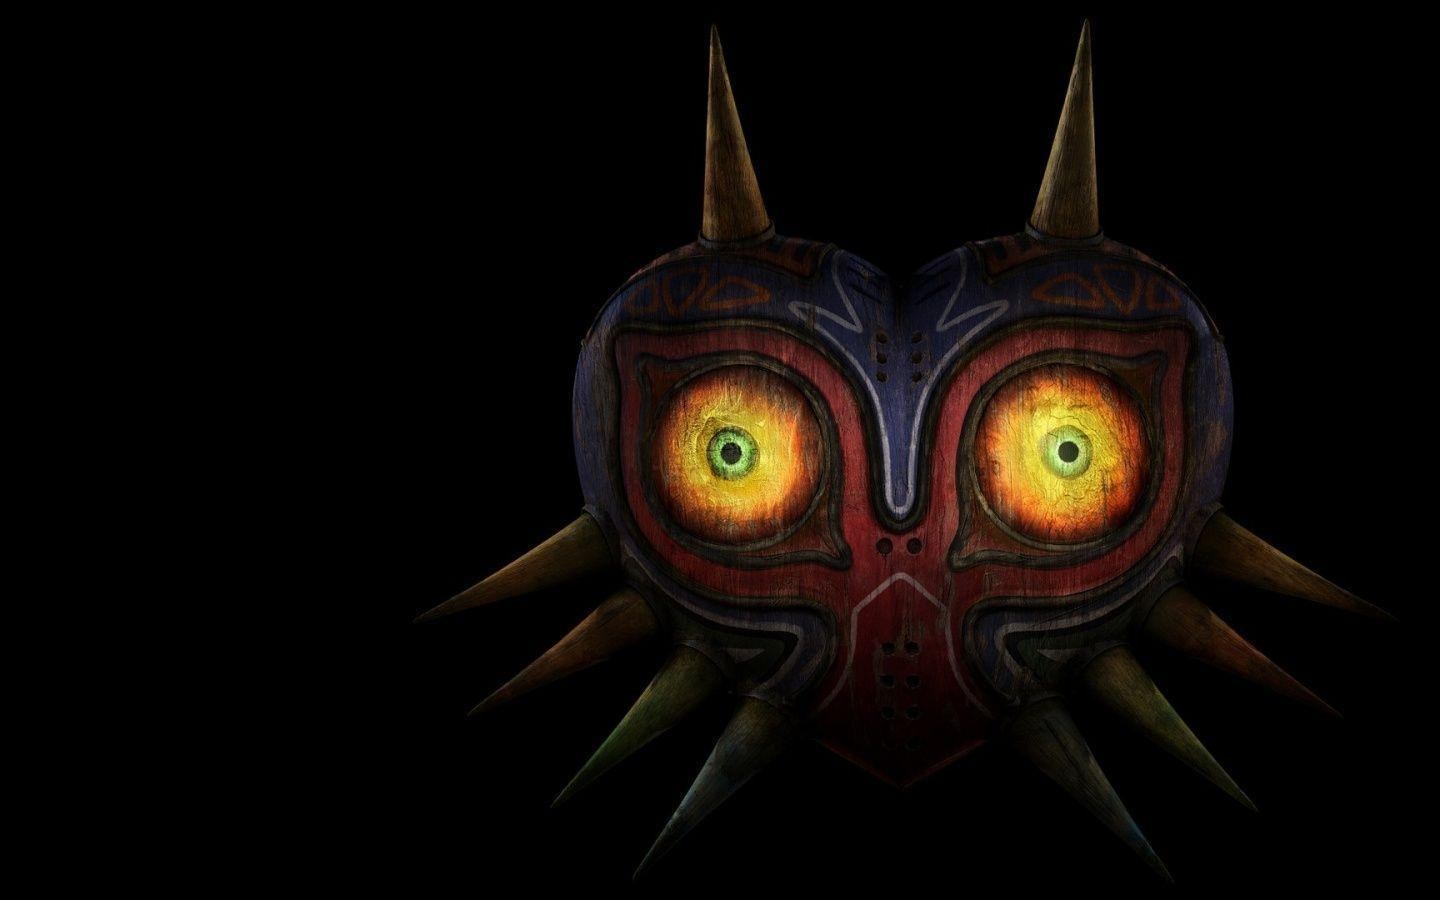 1440x900 The Legend Of Zelda Mask Desktop PC And Mac Wallpaper